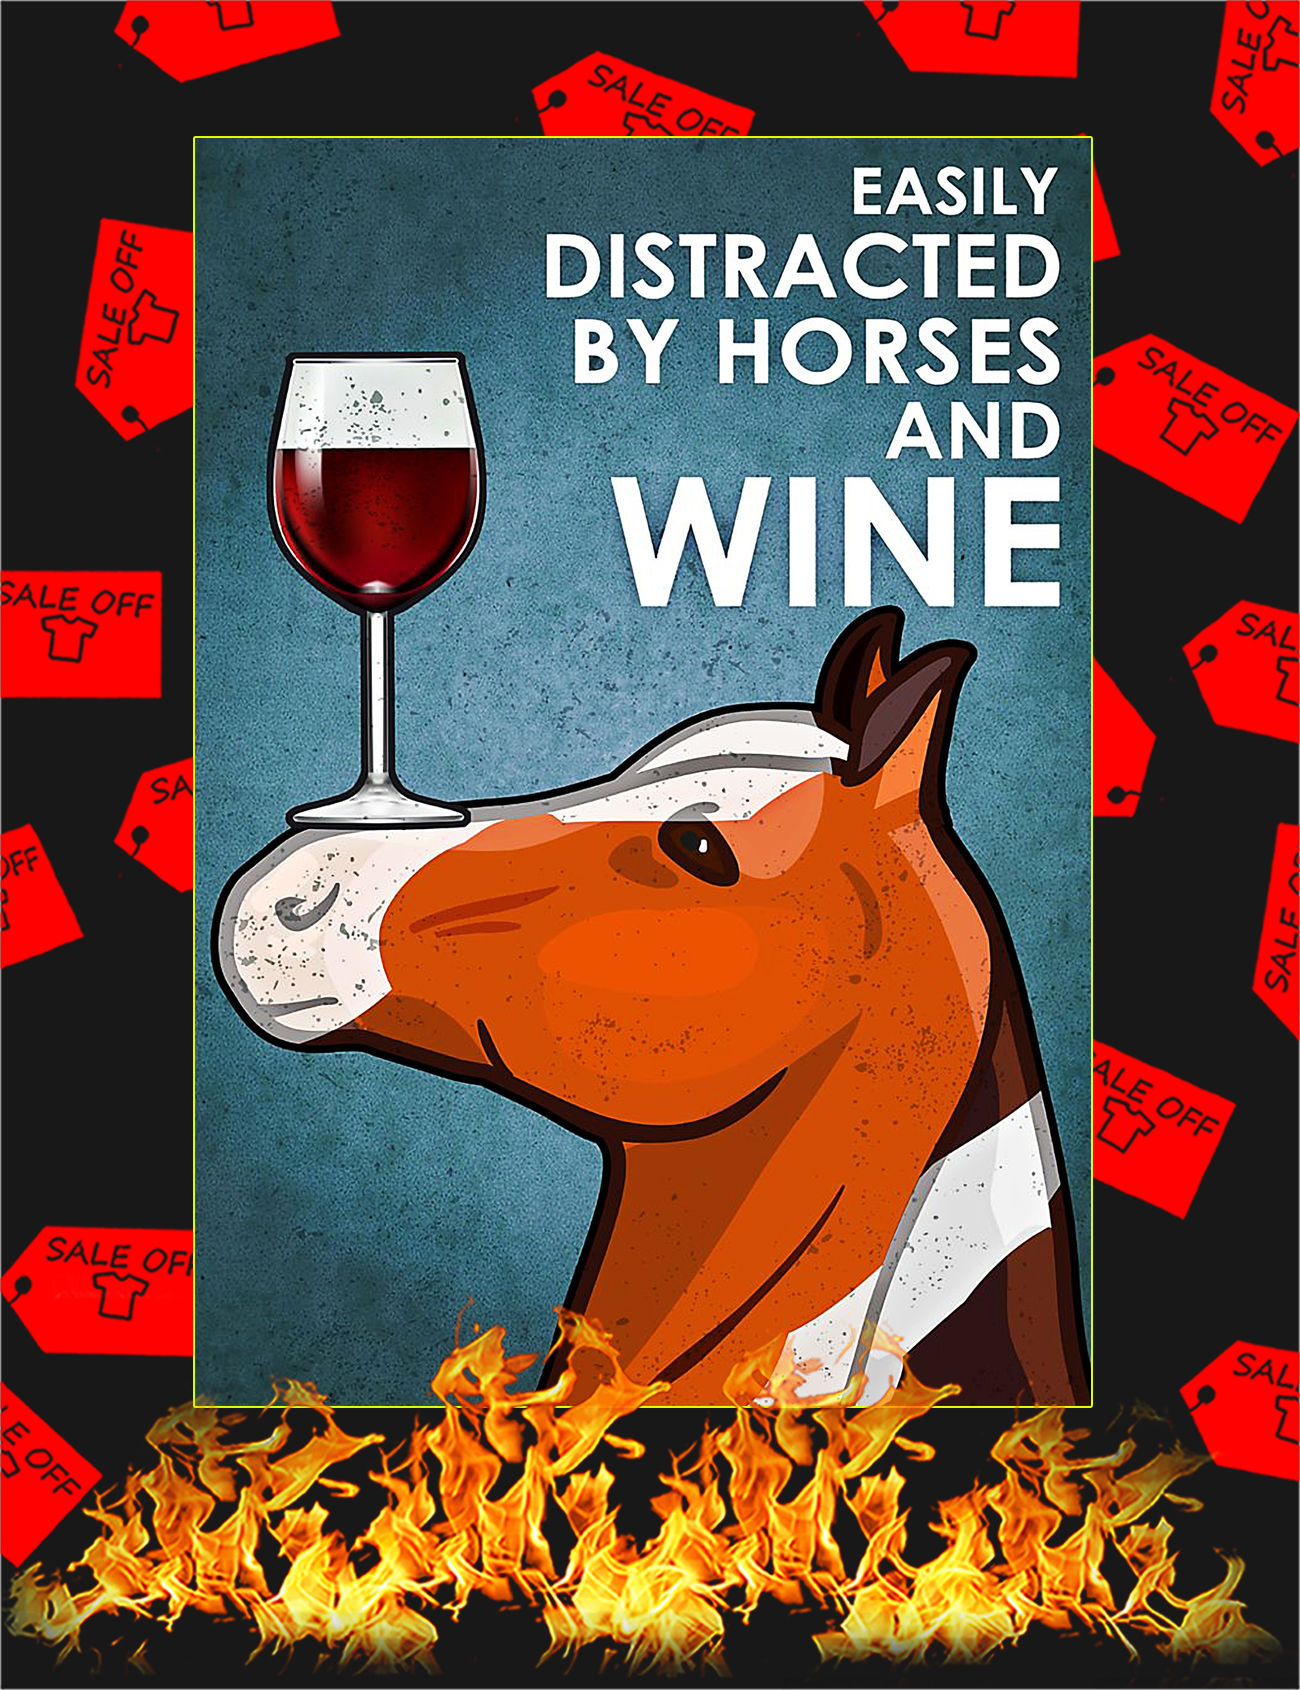 Easily distracted by horses and wine poster - A4